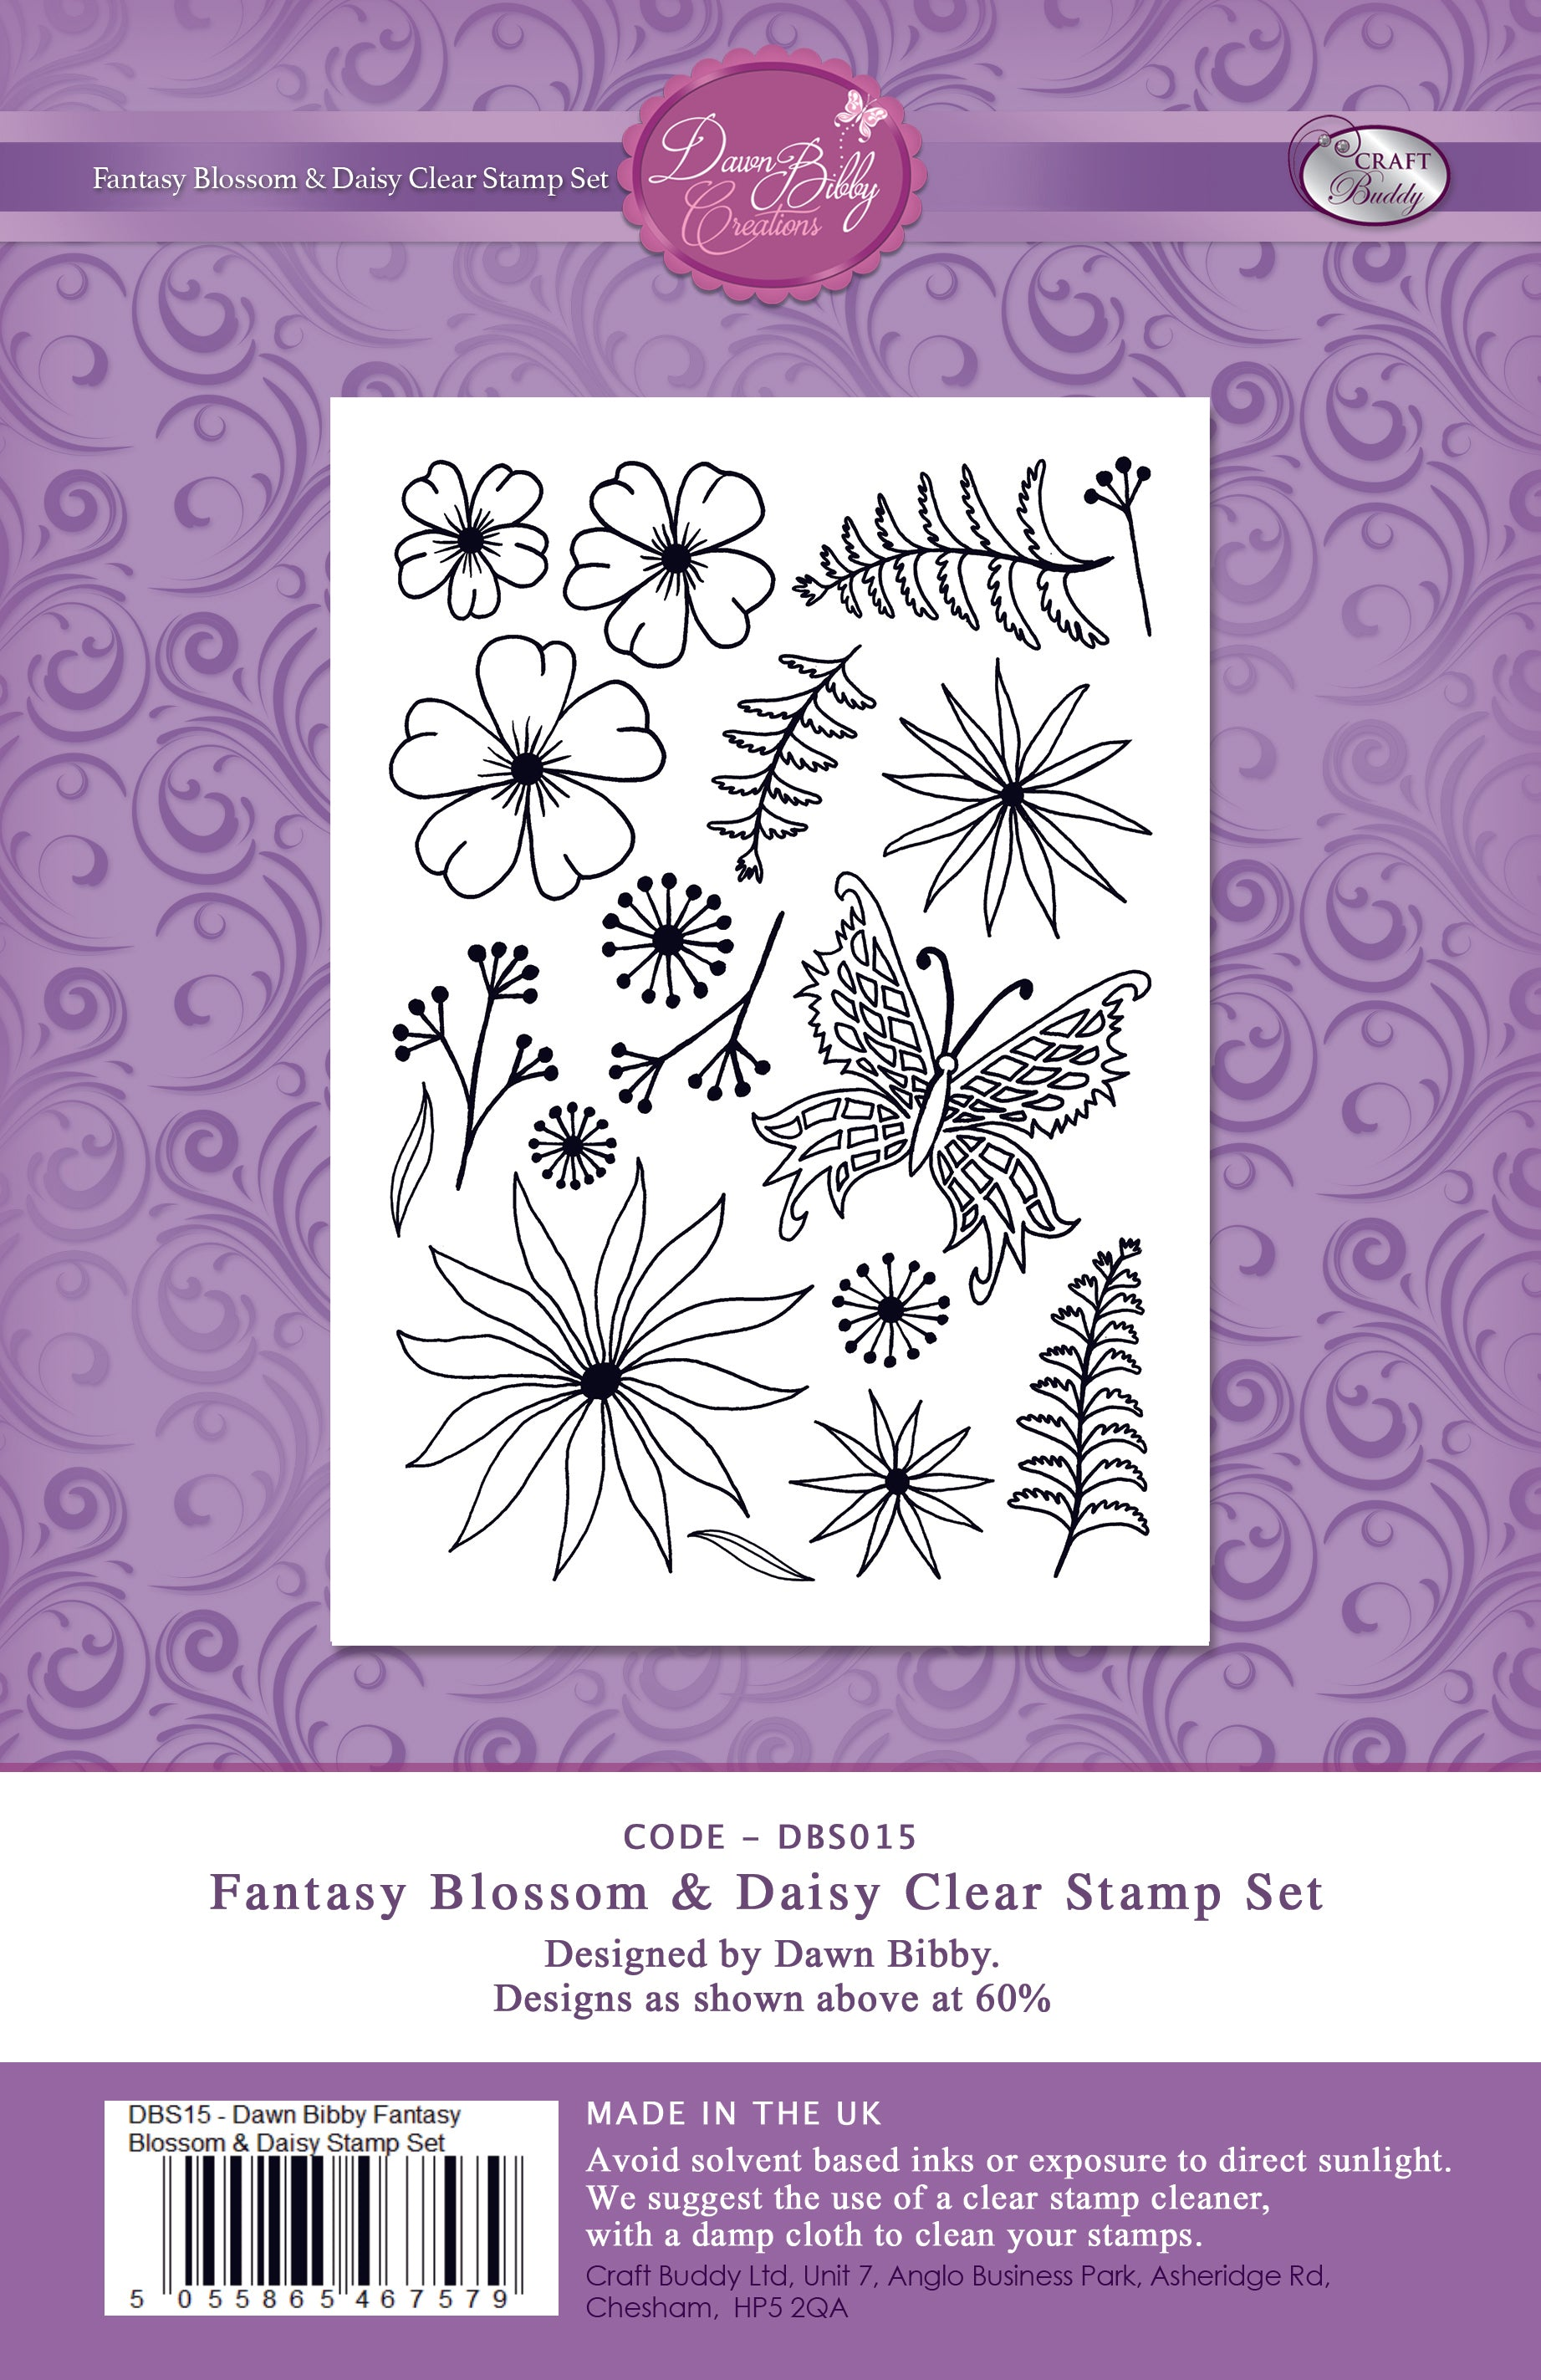 Fantasy Blossom and Daisy Clear Stamp Set